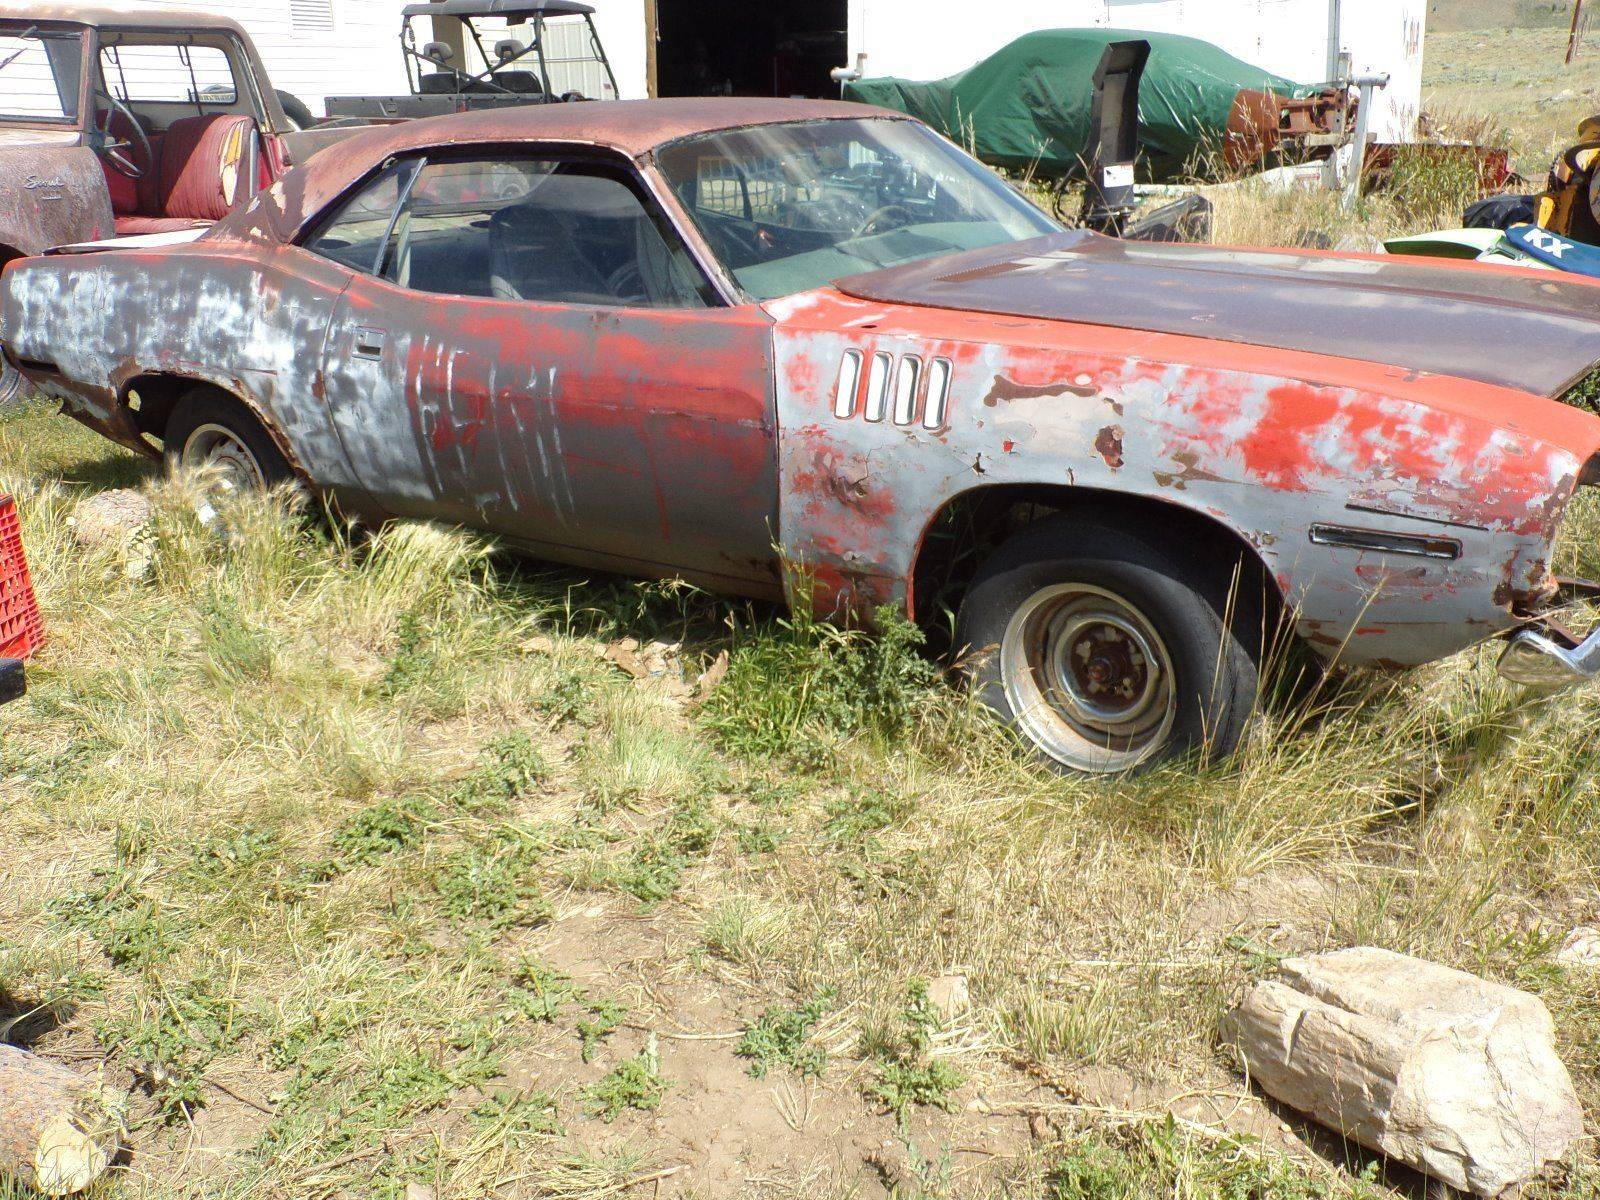 71 Cuda 340 w shaker project sold- Price Point Out of Sight! | For E